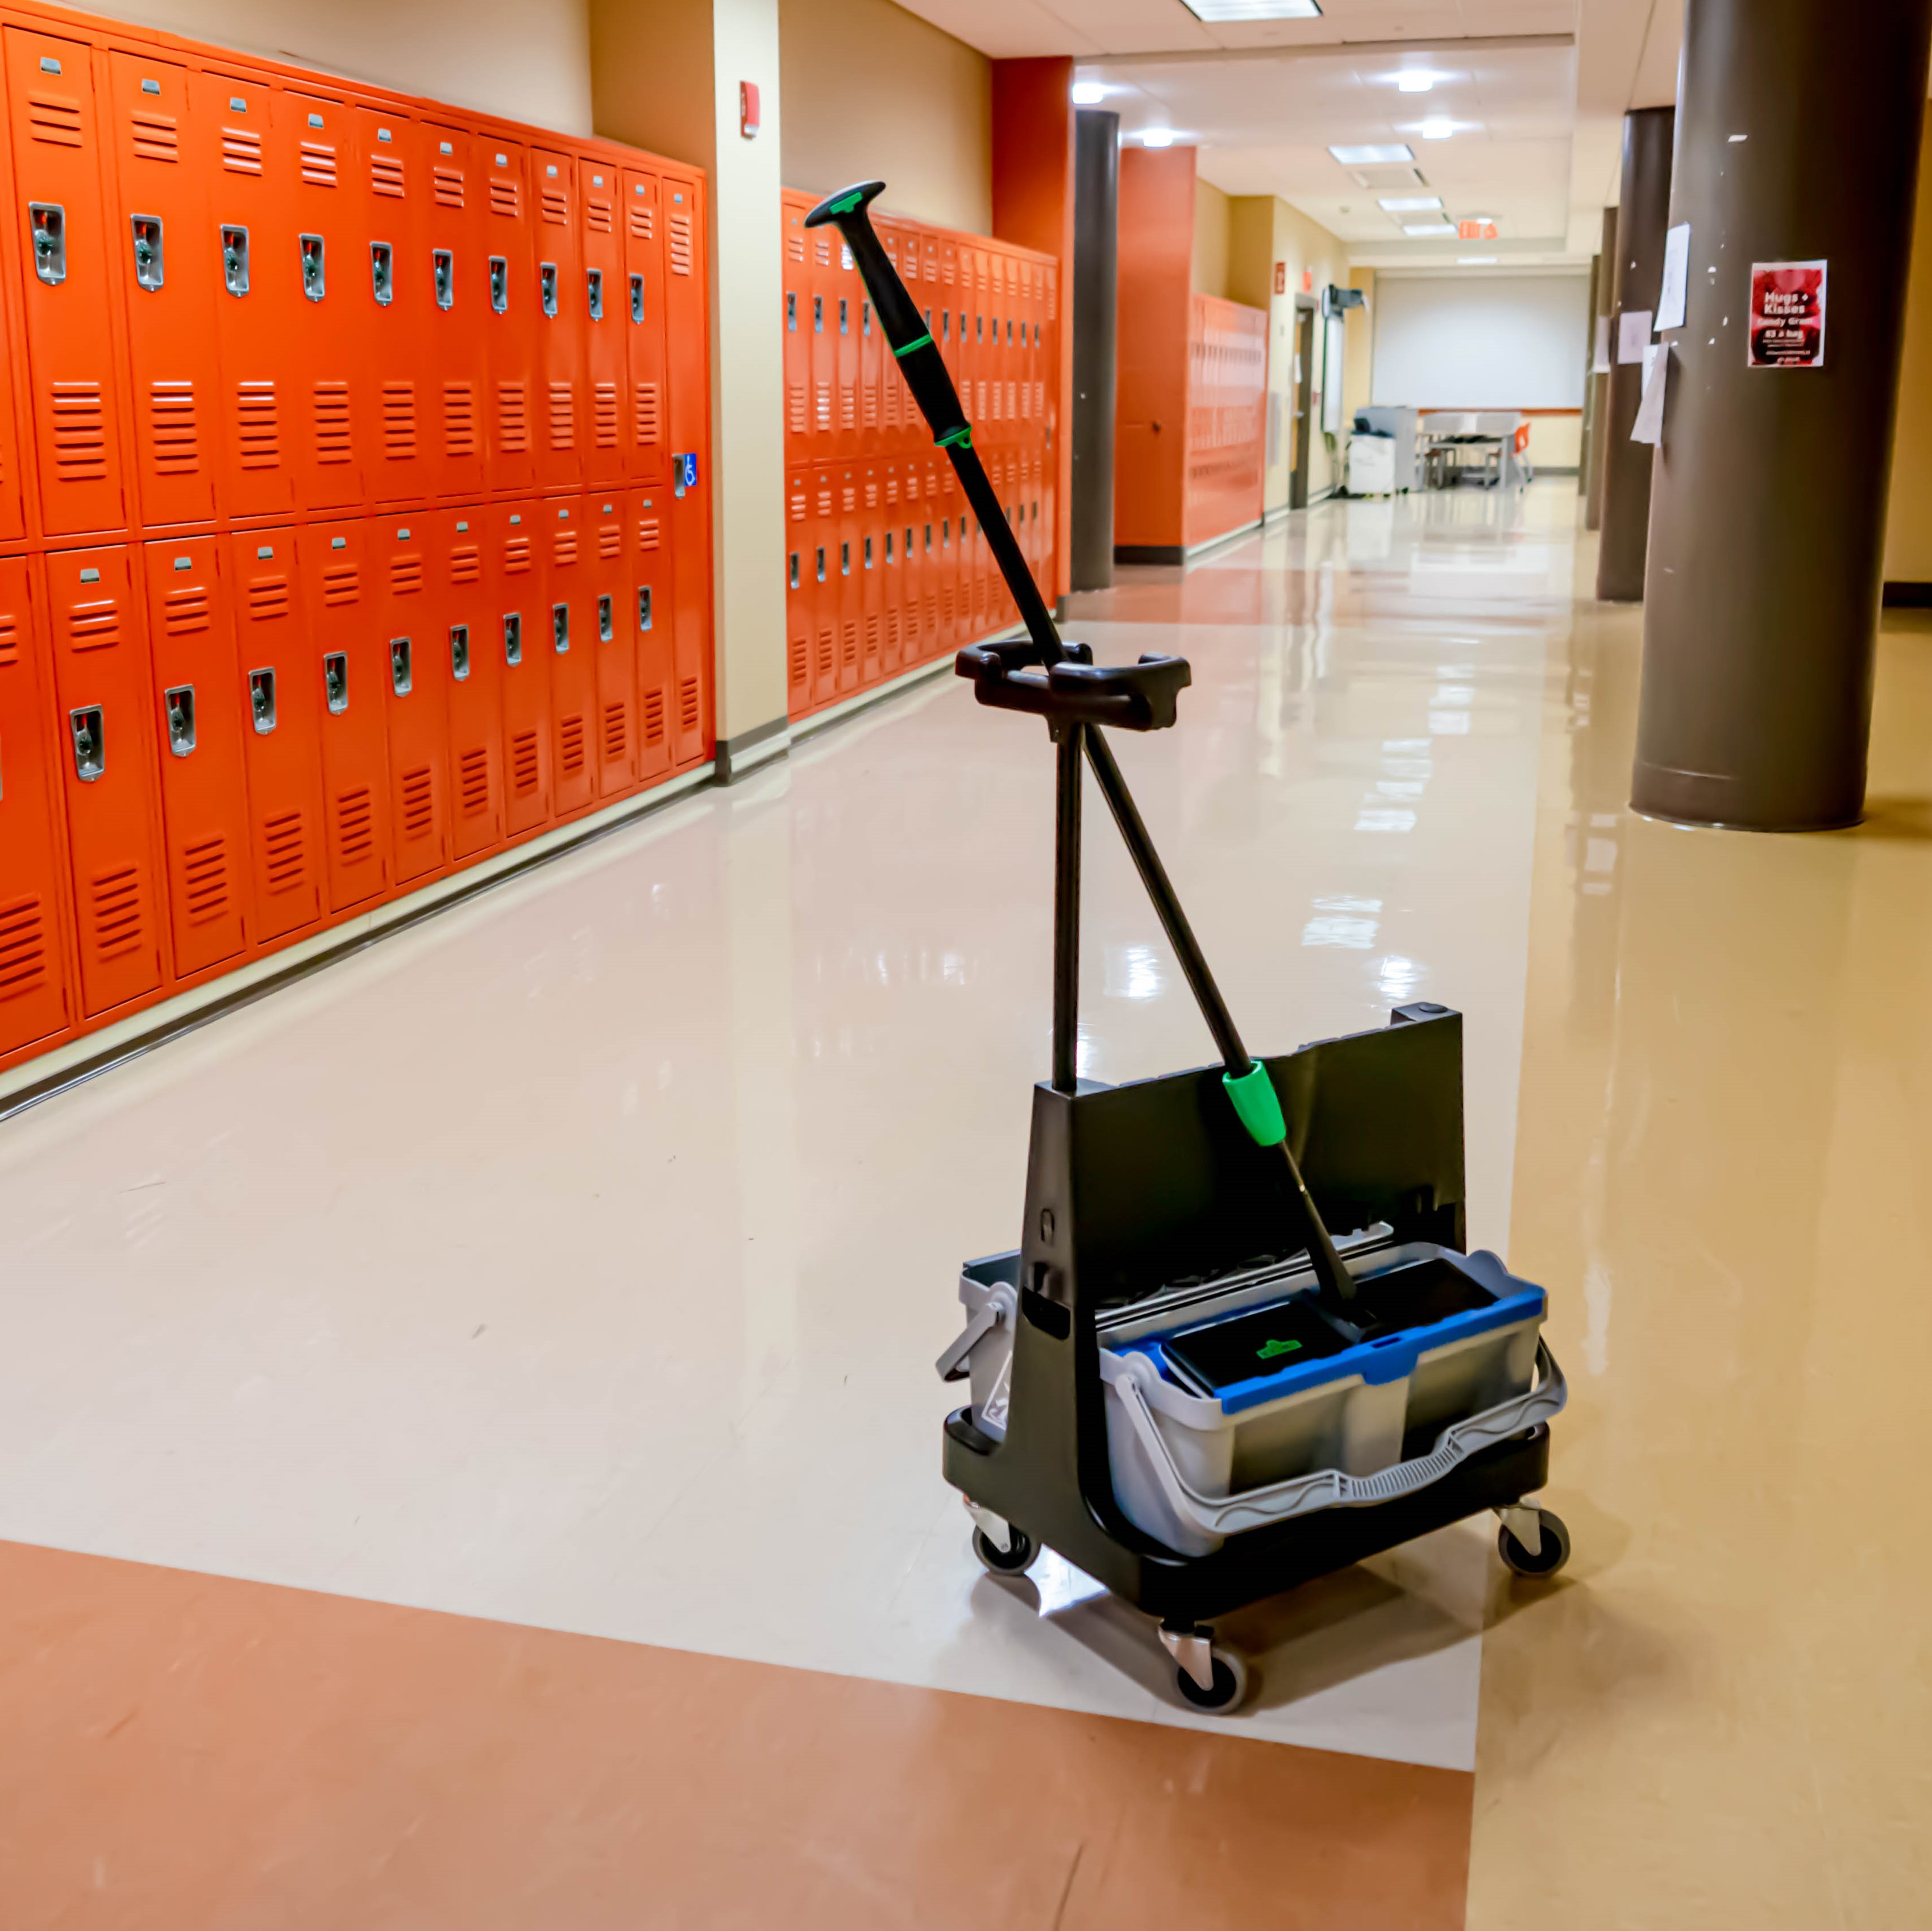 Omni Clean Floor Cleaning System